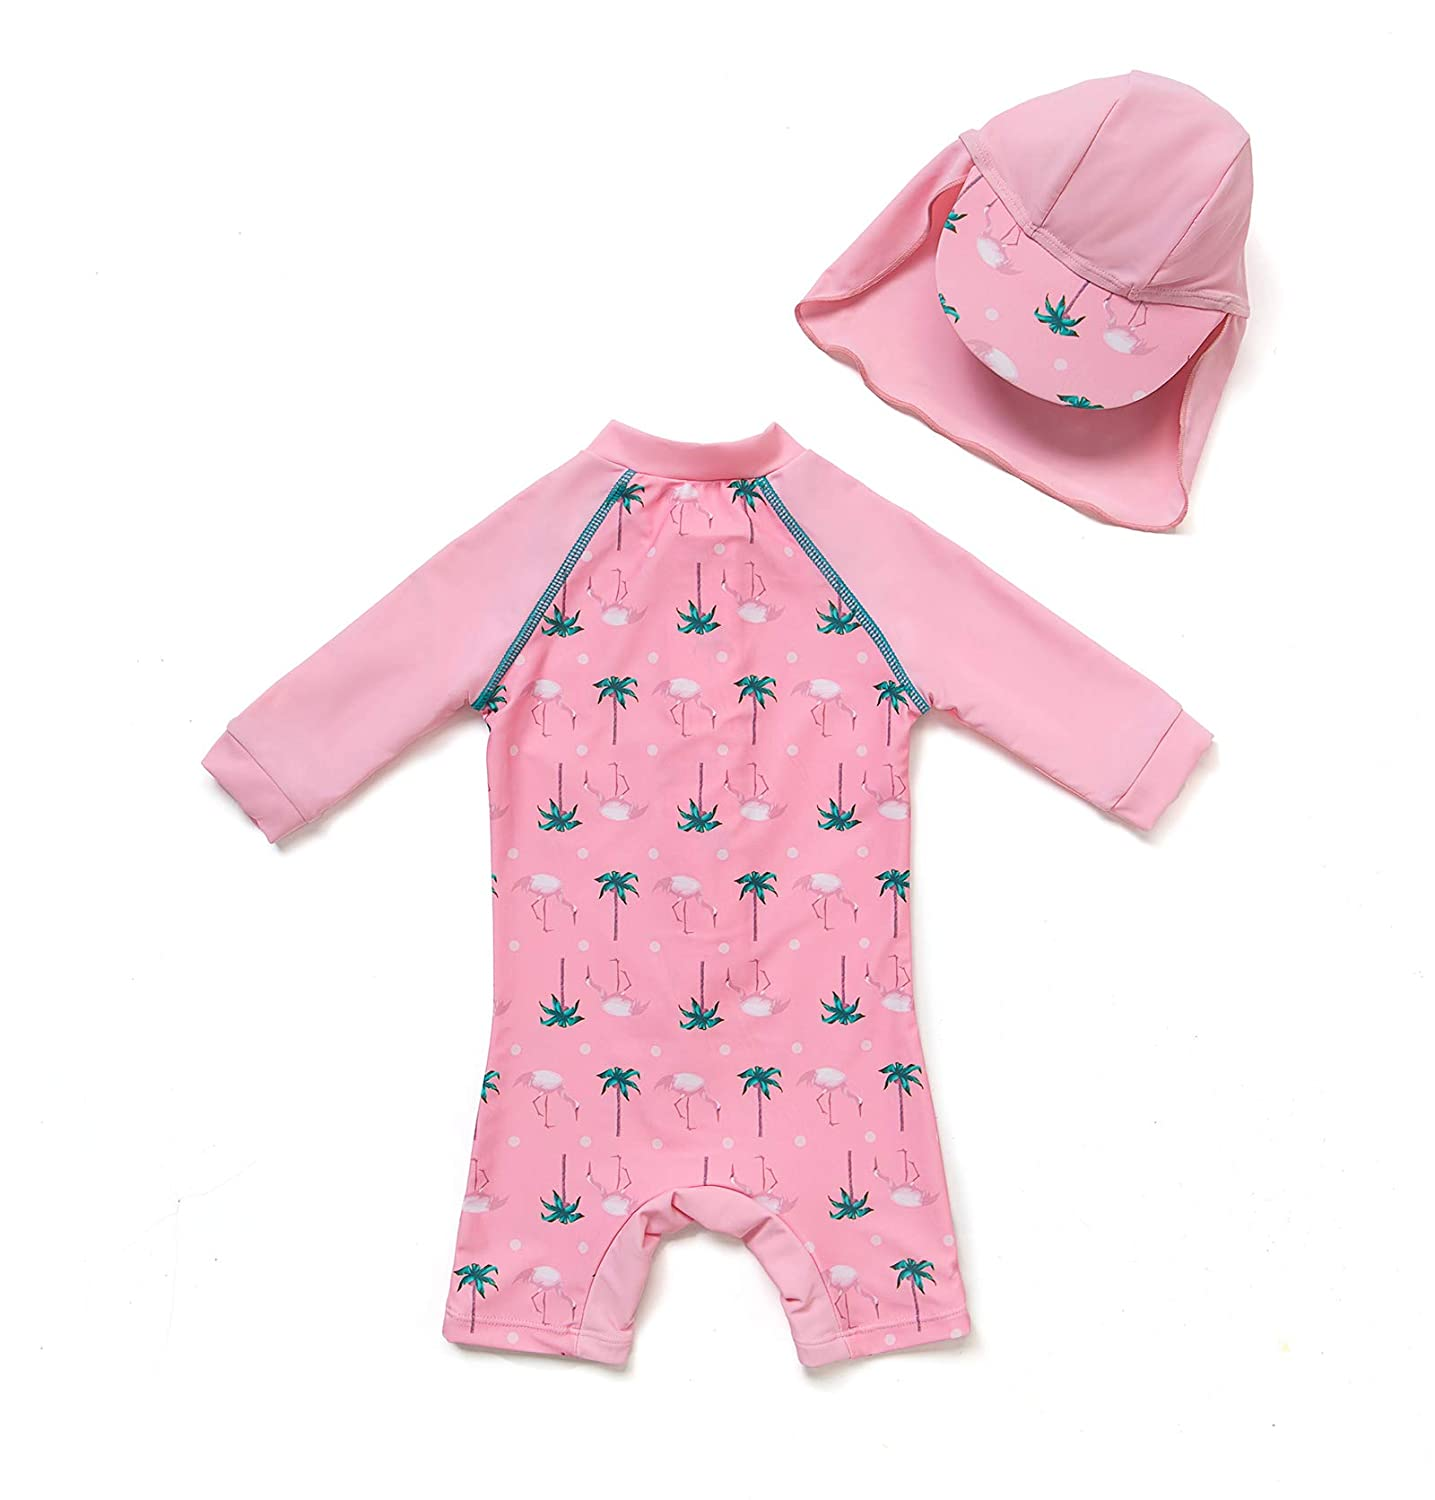 Baby//Toddler Girl One Piece Swimsuit with UPF 50 Sun Protection